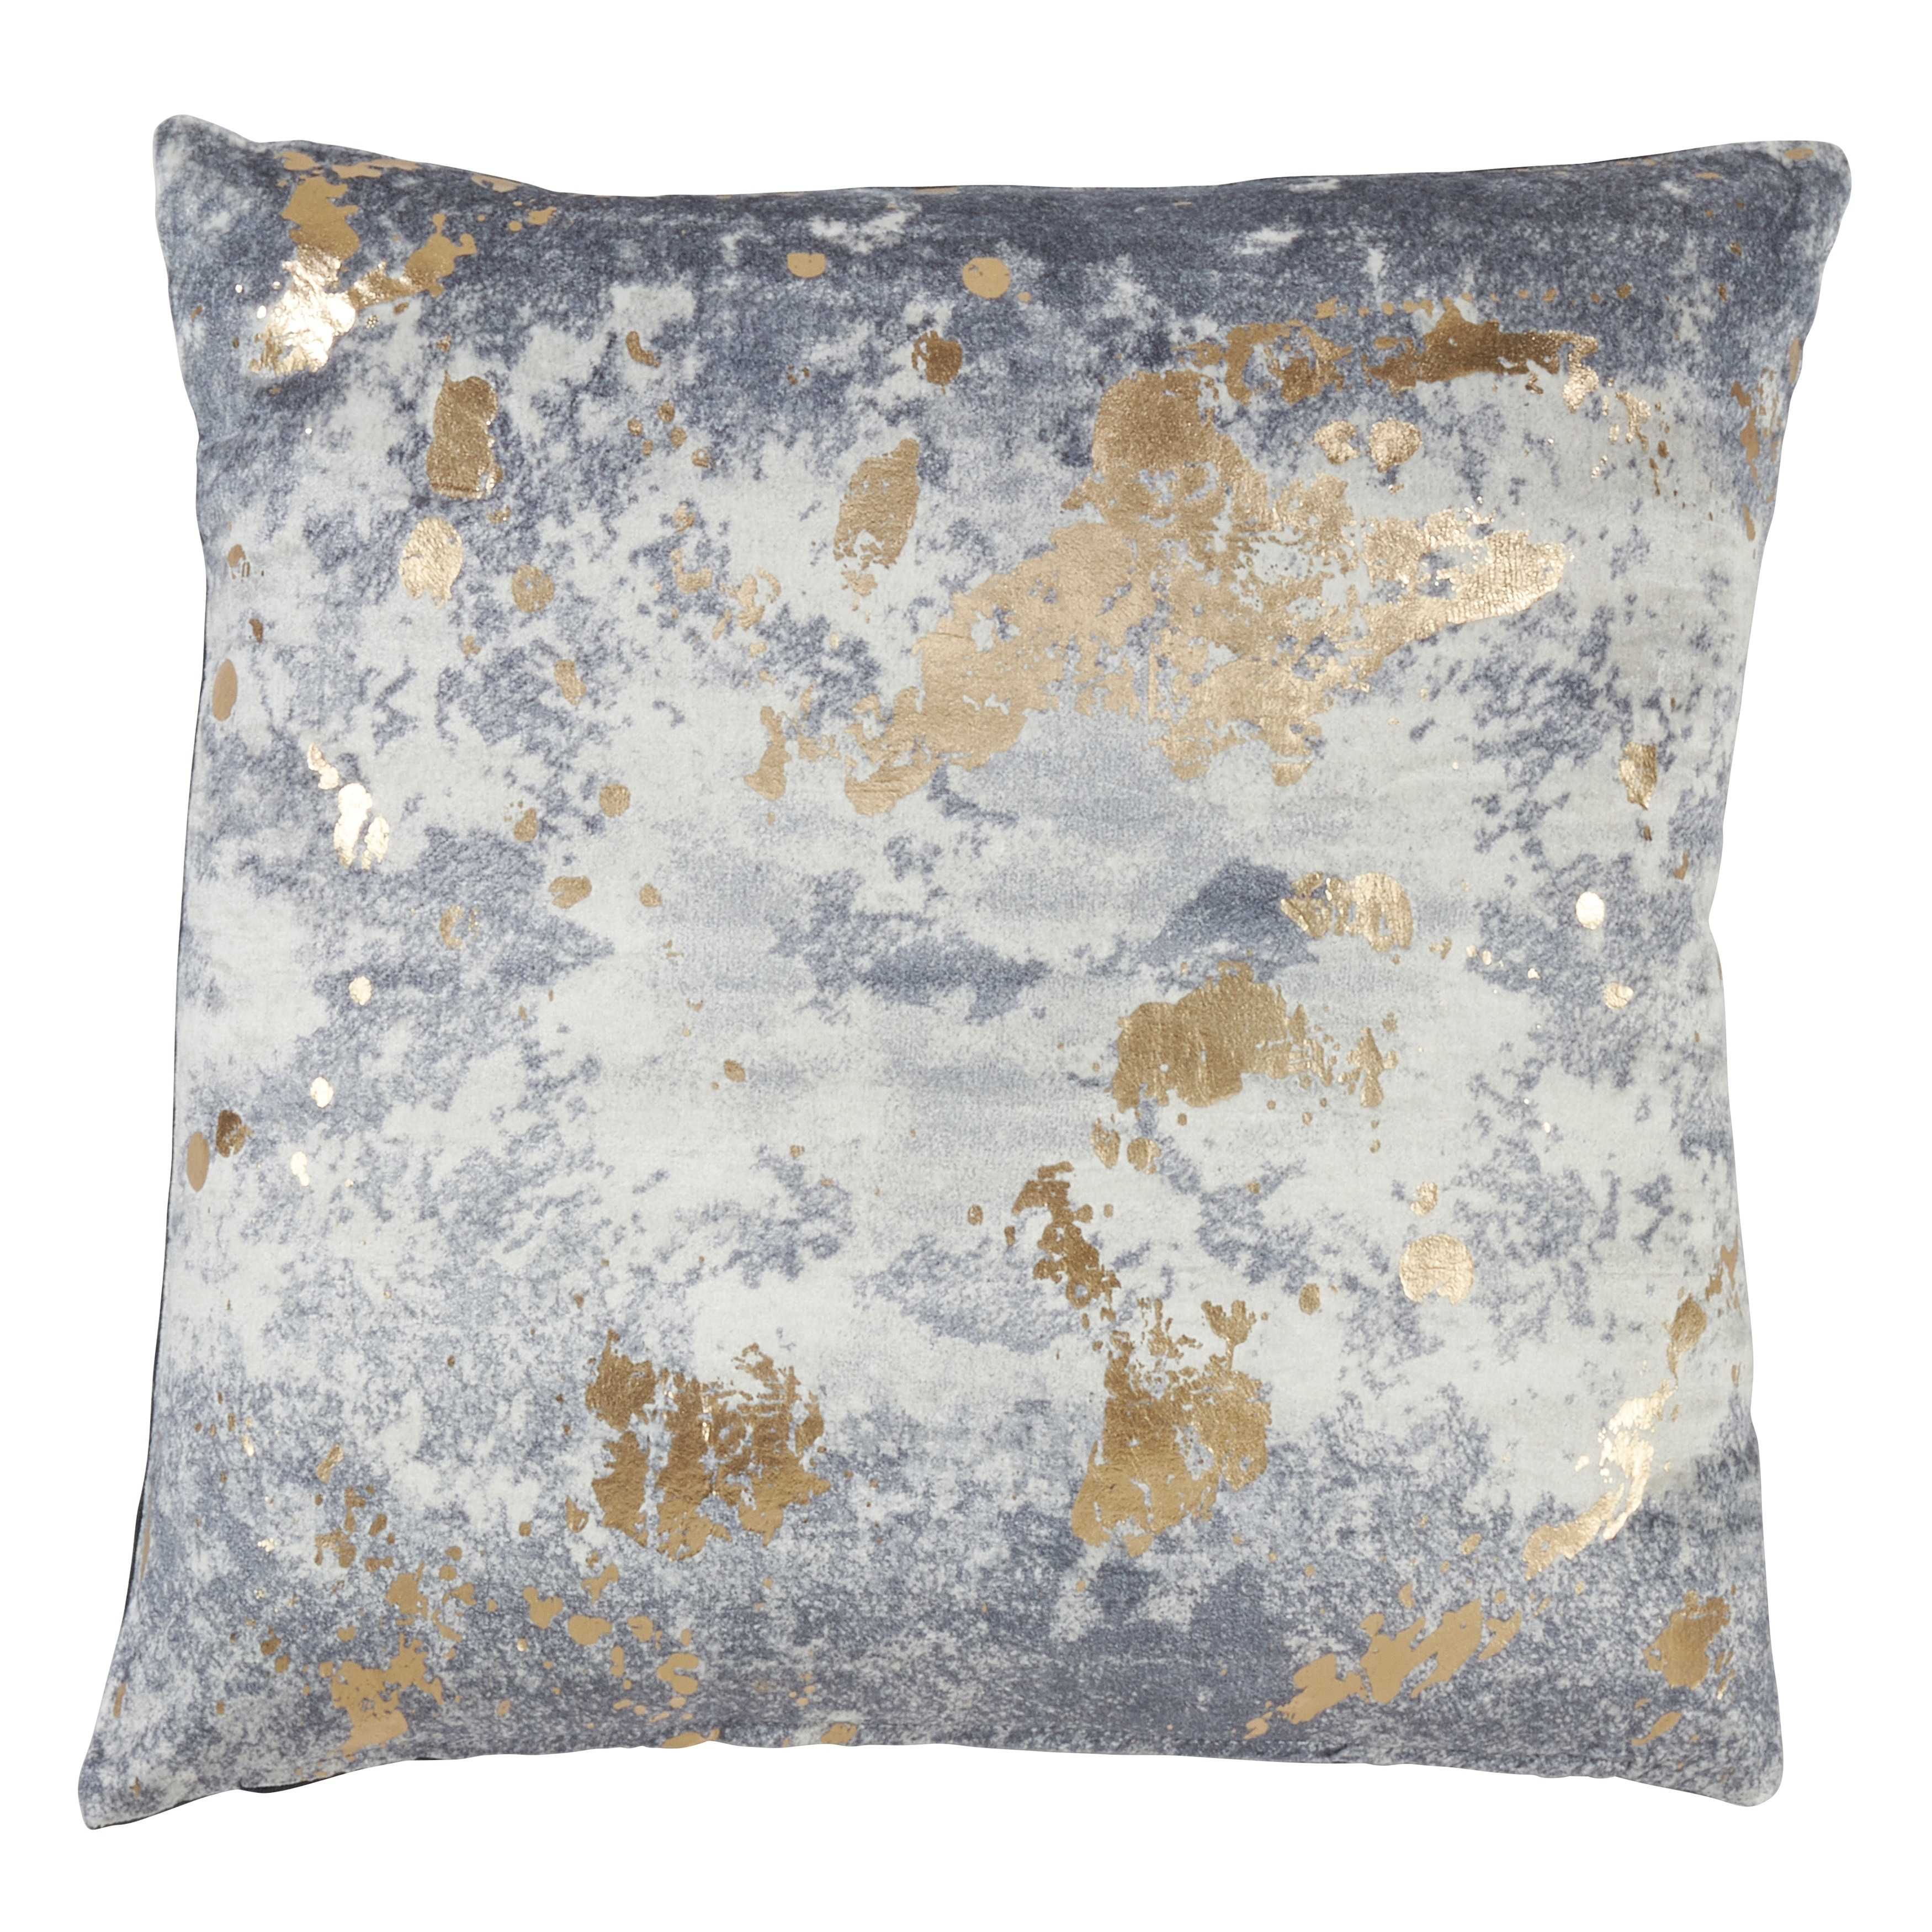 Saro Lifestyle Foil Spattered Throw Pillow with Down Filling